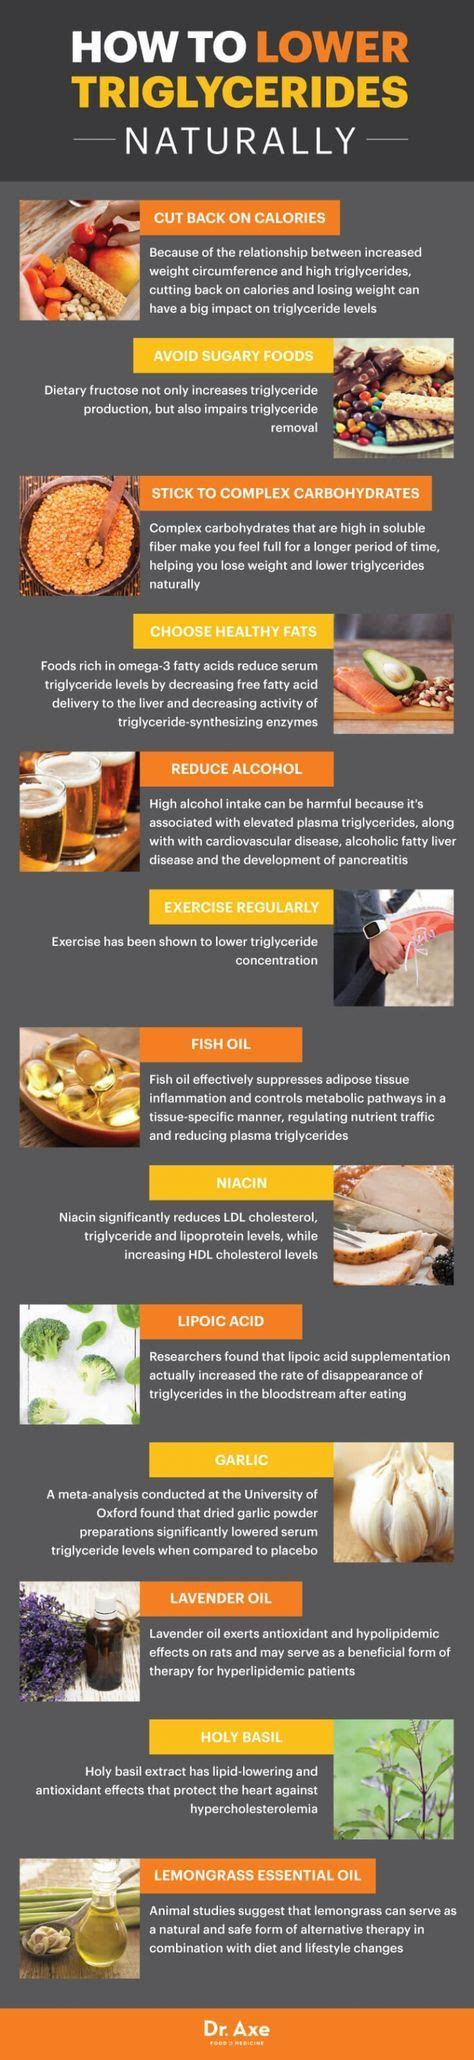 17 Best Ideas About Lower Triglycerides On Pinterest